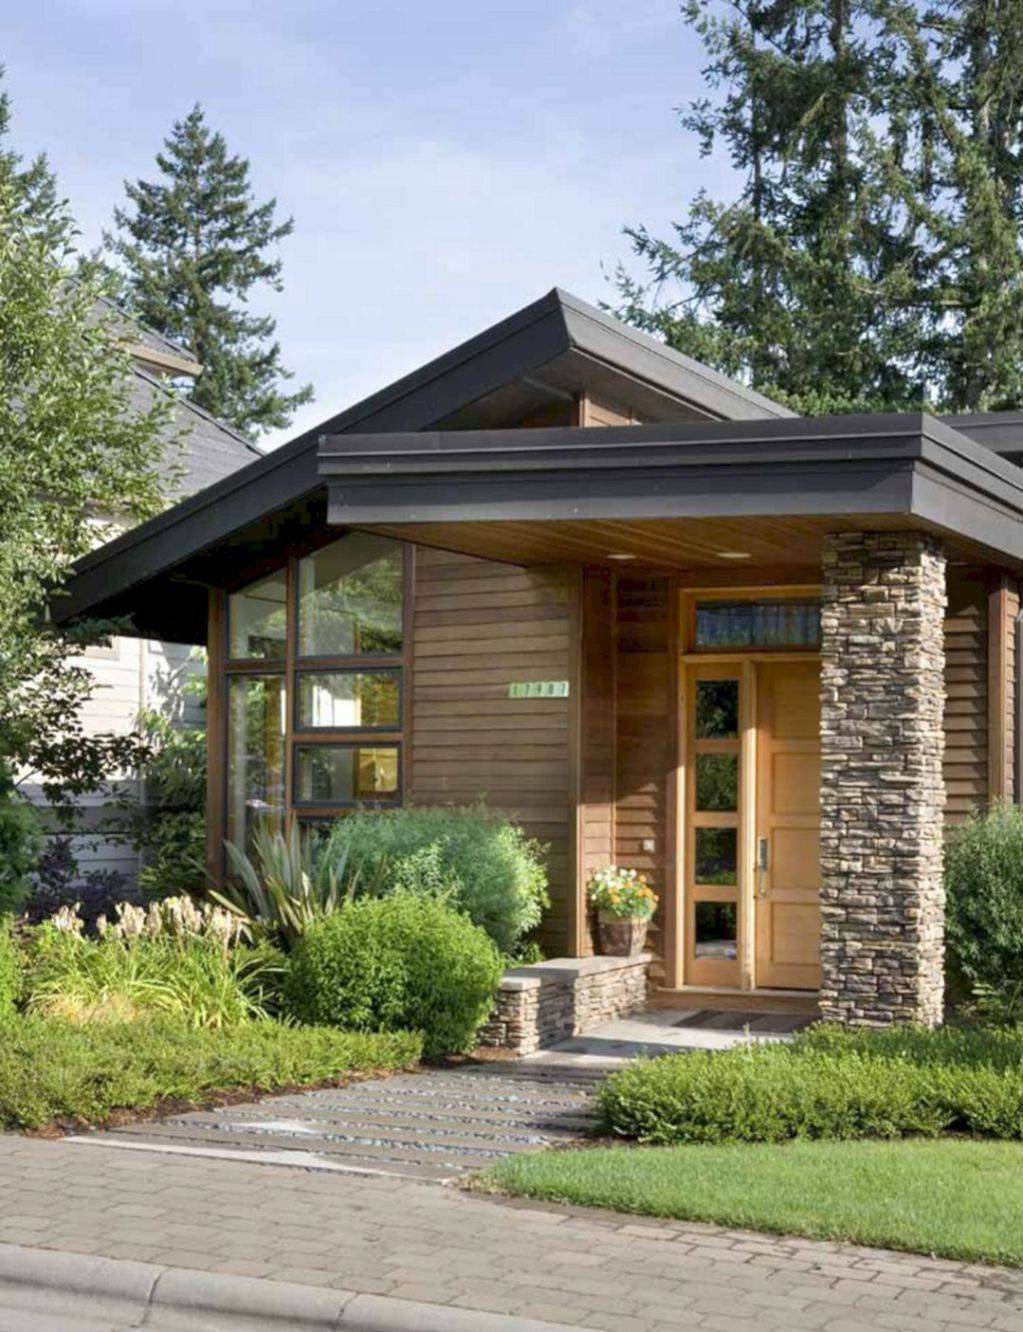 Top Architecture House Design Inspirational Likable Best Small Modern Home Designs Awesome Glamorous